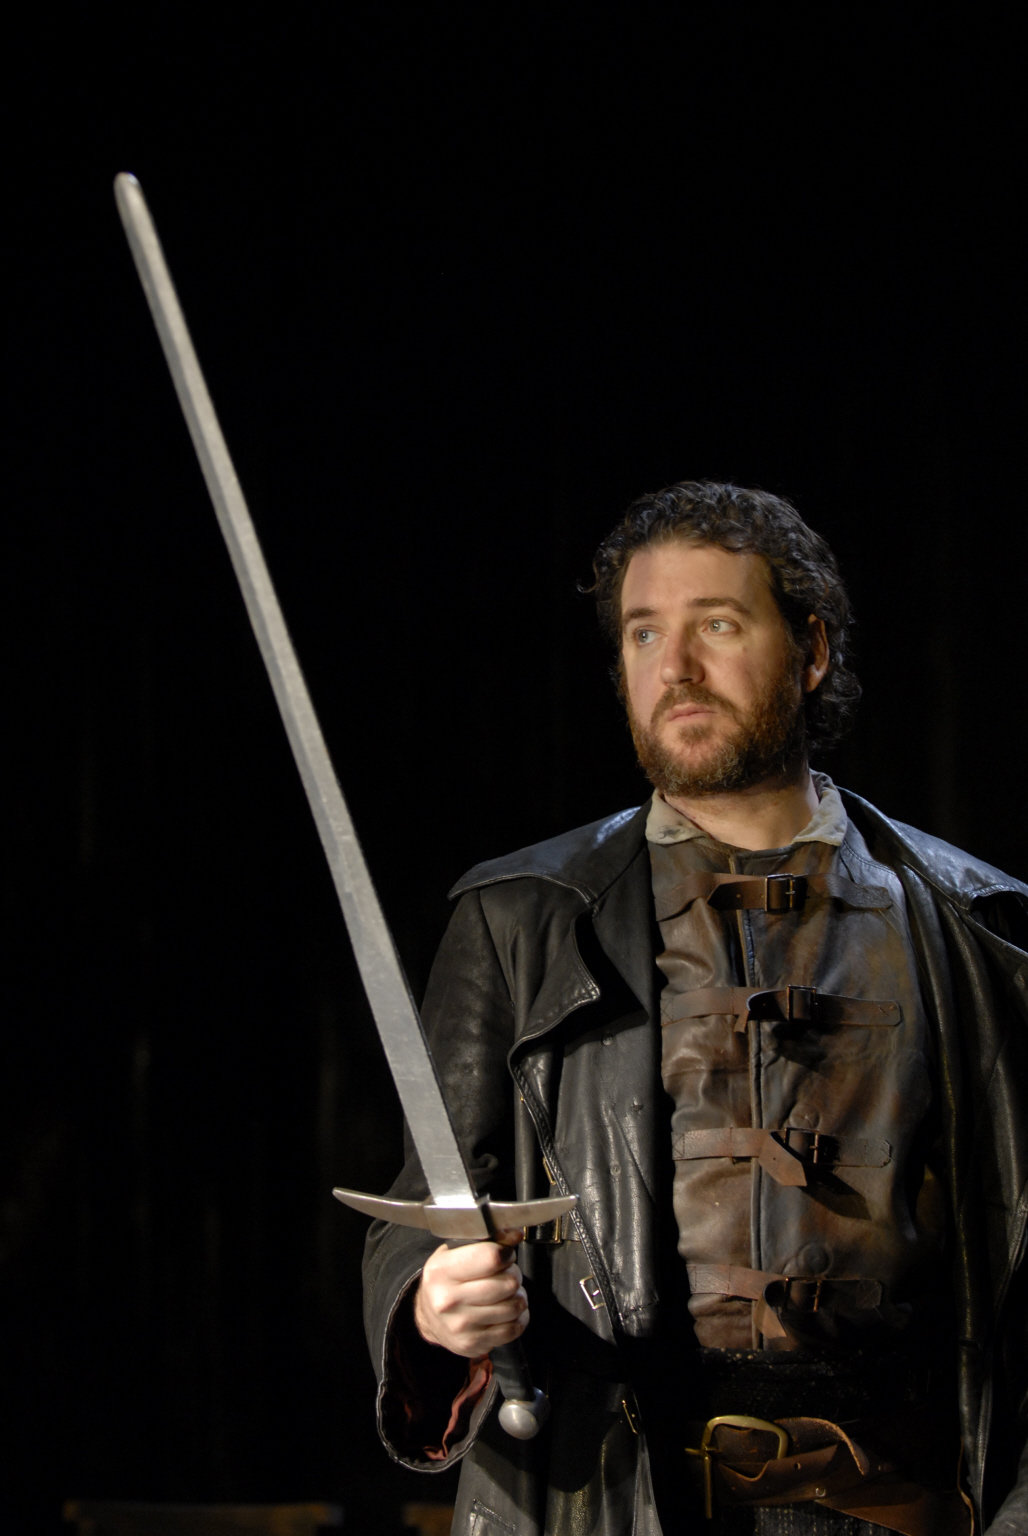 Macduff holds a sword in front of himself.